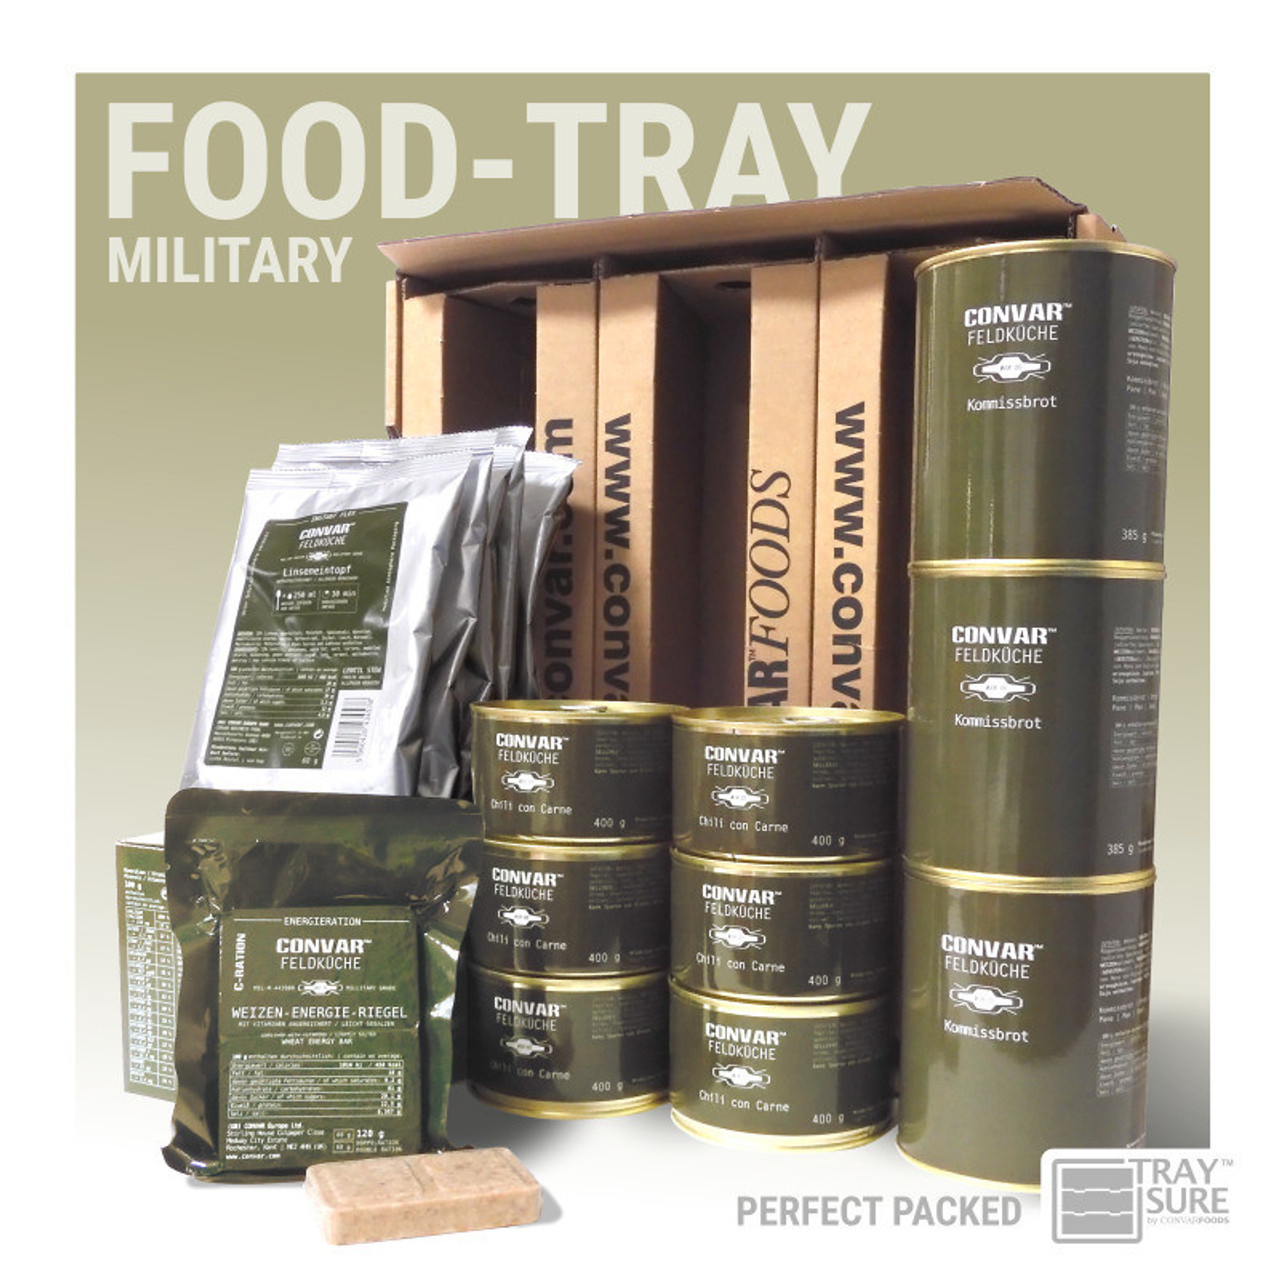 Convar Military Food Tray 10 Years